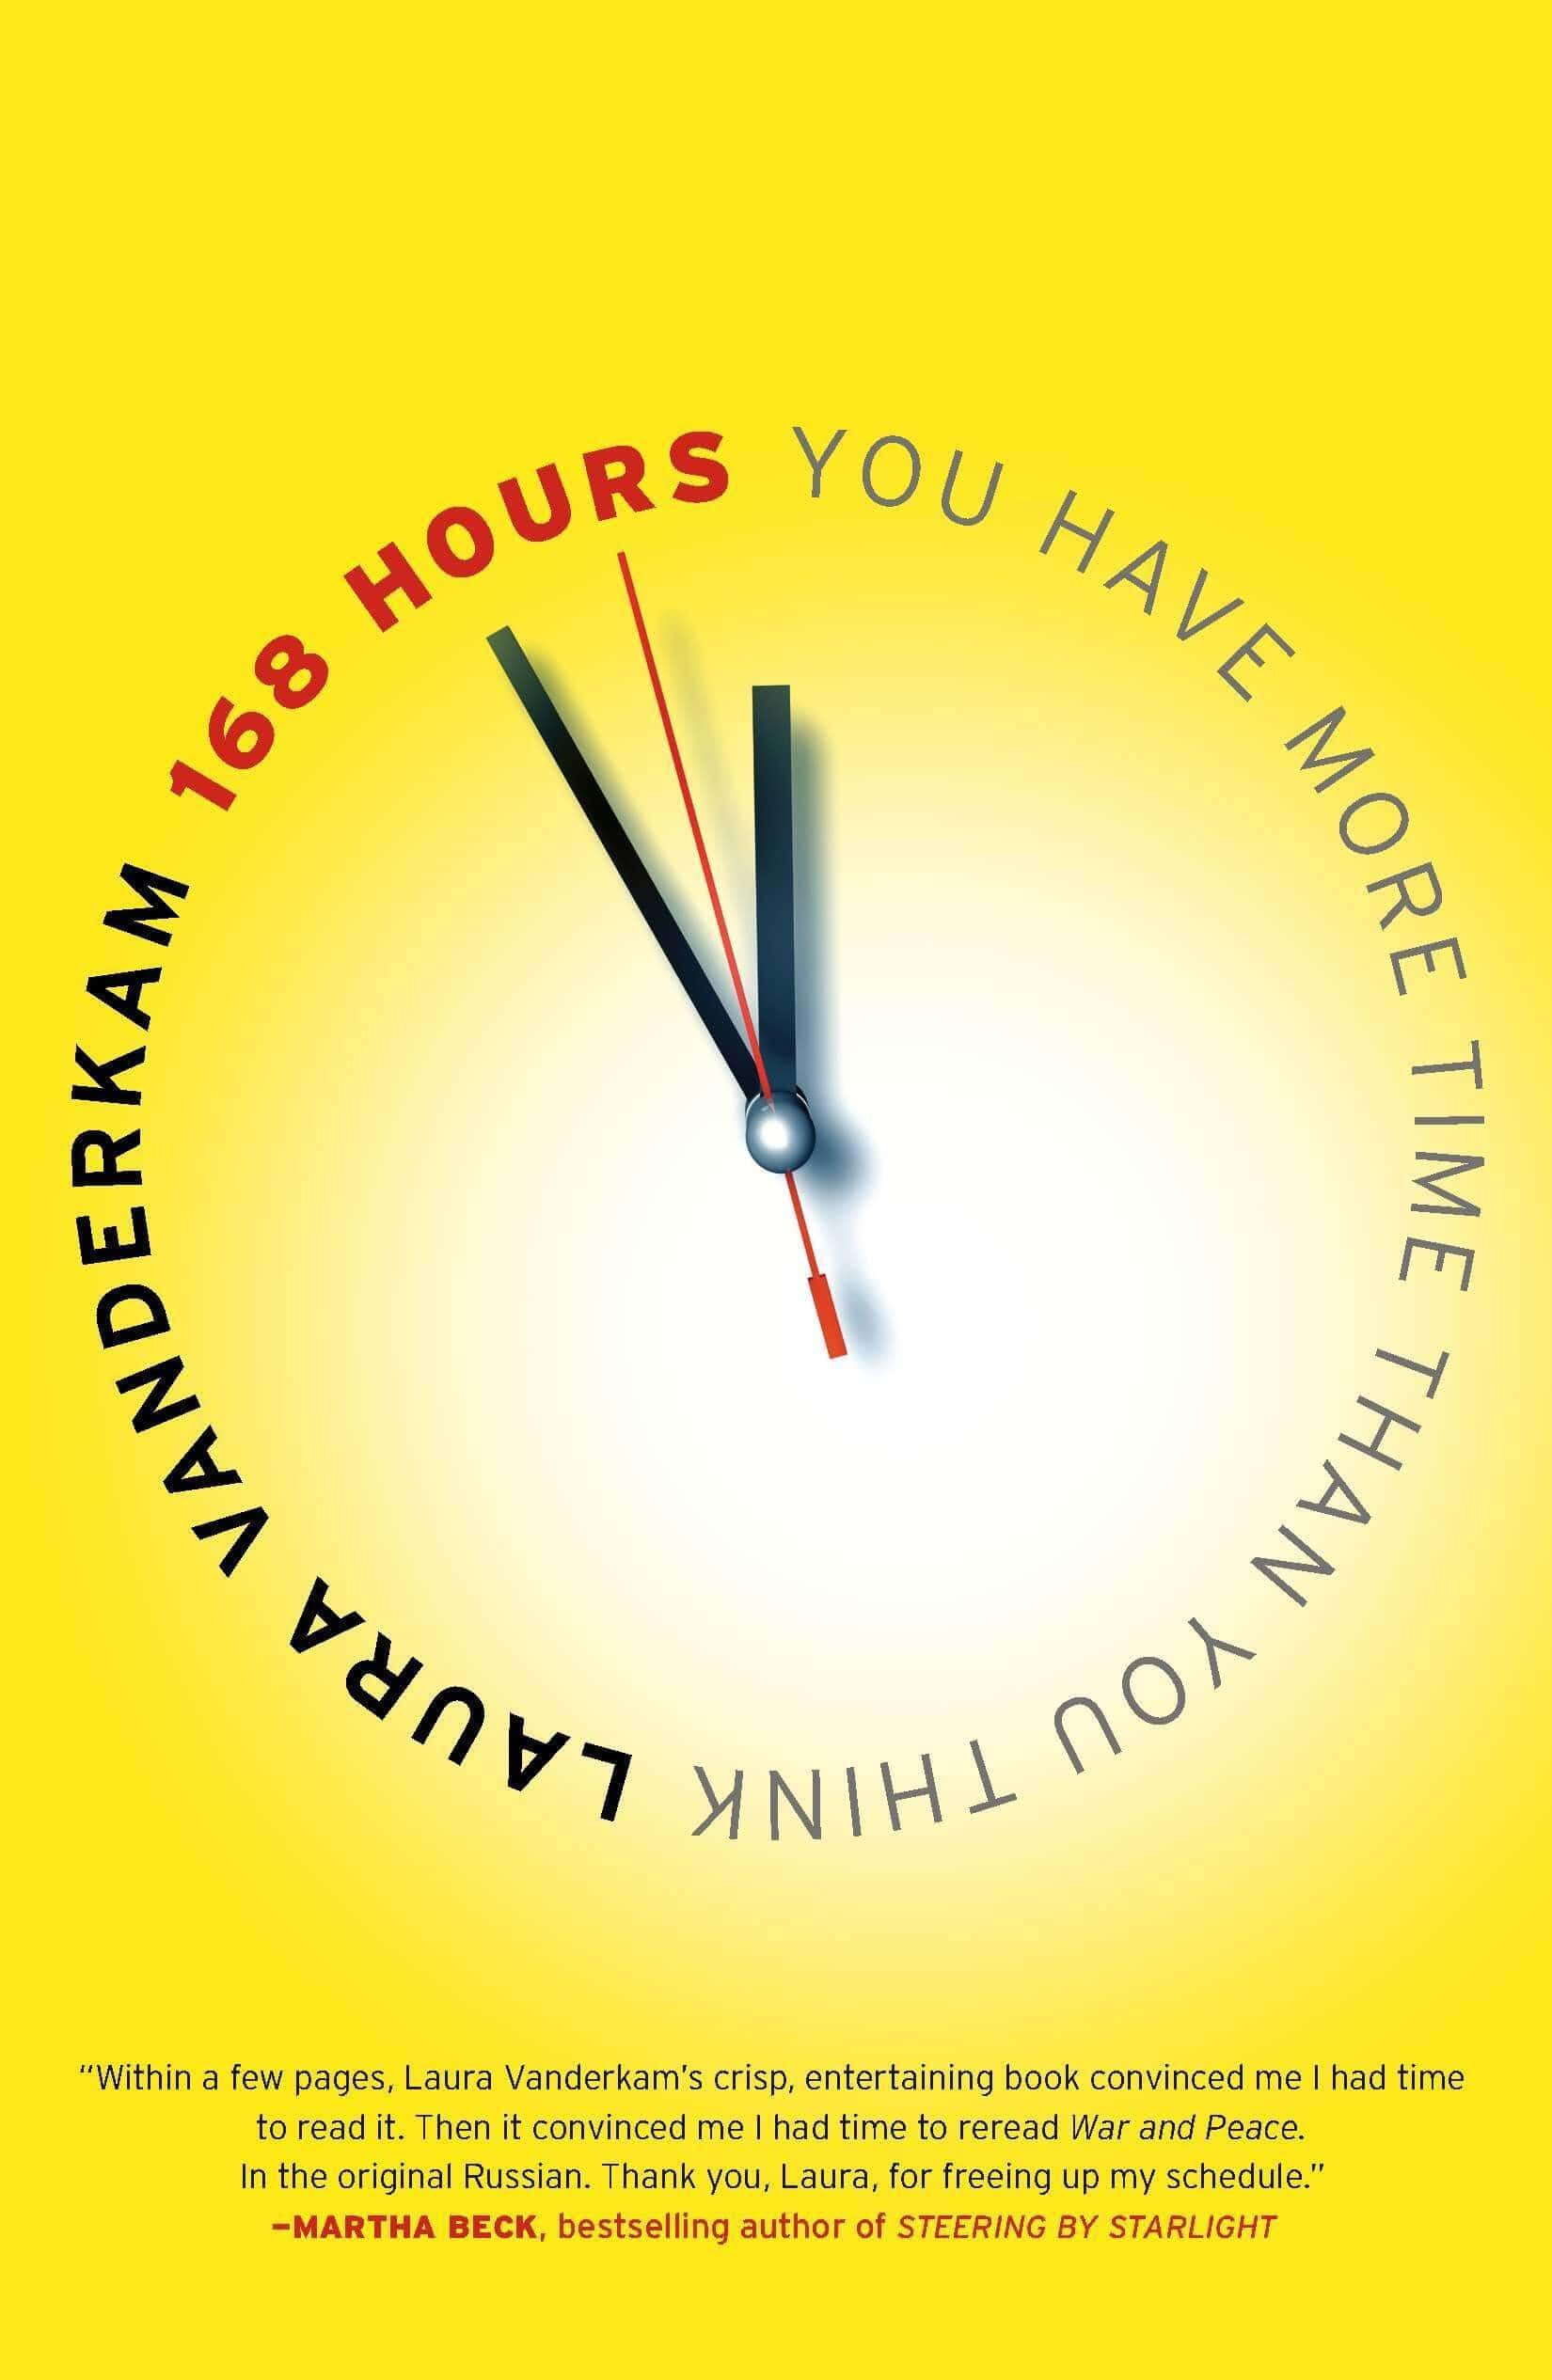 168-Hours-You-Have-More-Time-Than-You-Think-Laura-Vanderkam